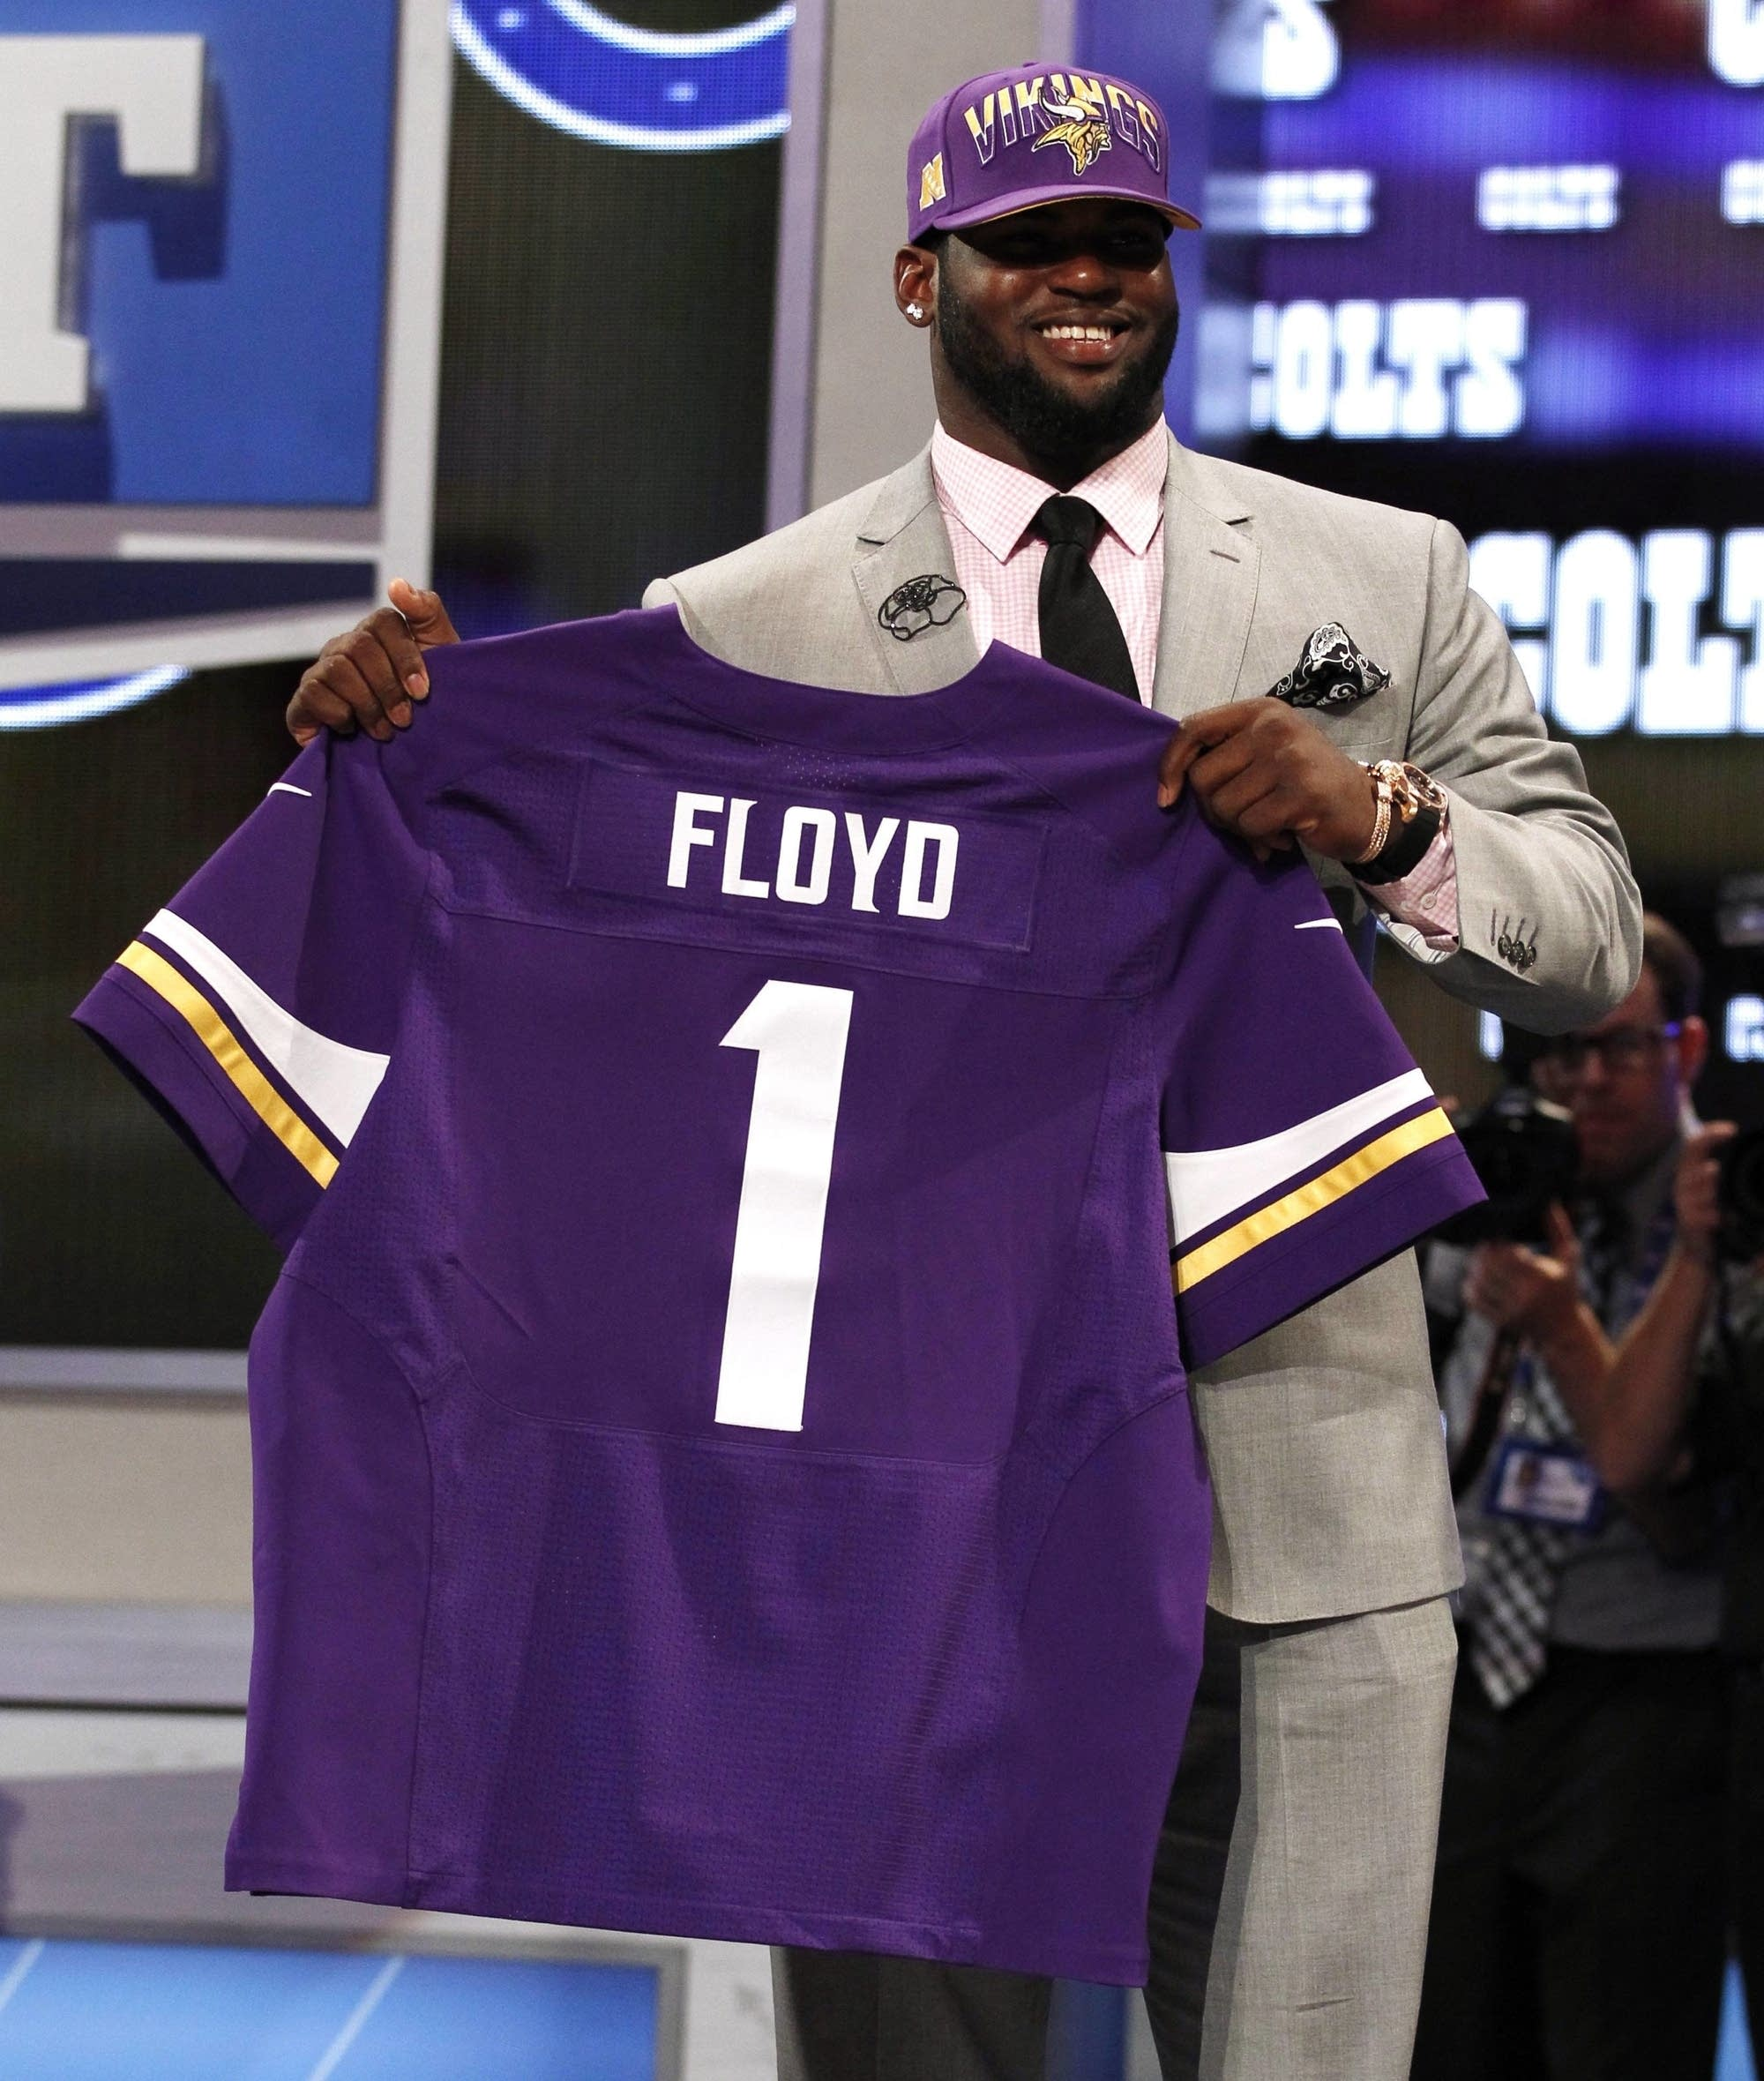 Vikings NFL draft pick Floyd